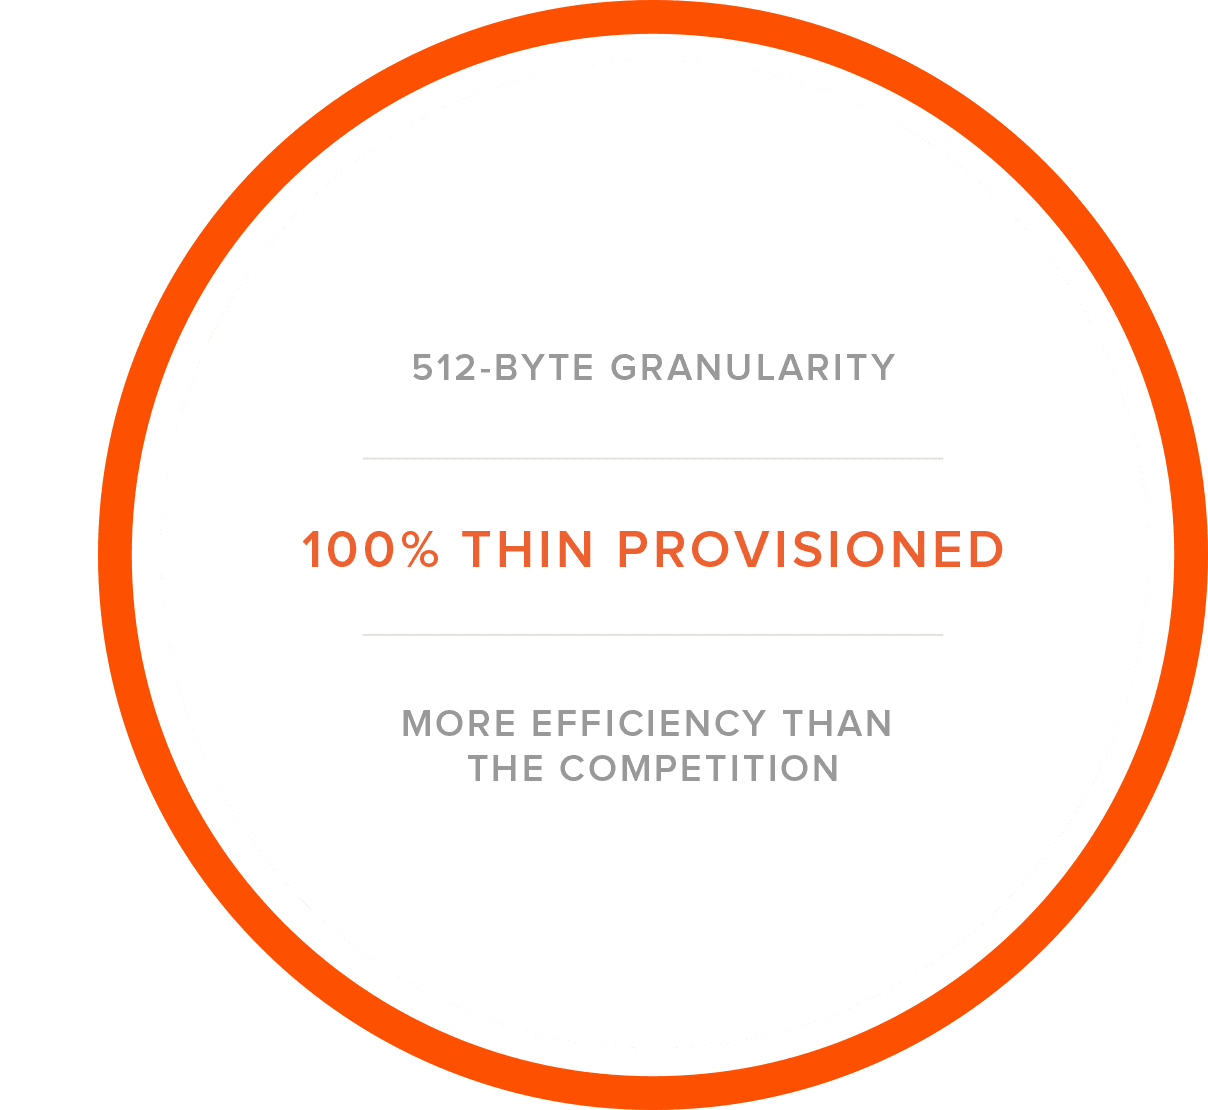 Purity Thin Provisioning Delivers Greatest Efficiency